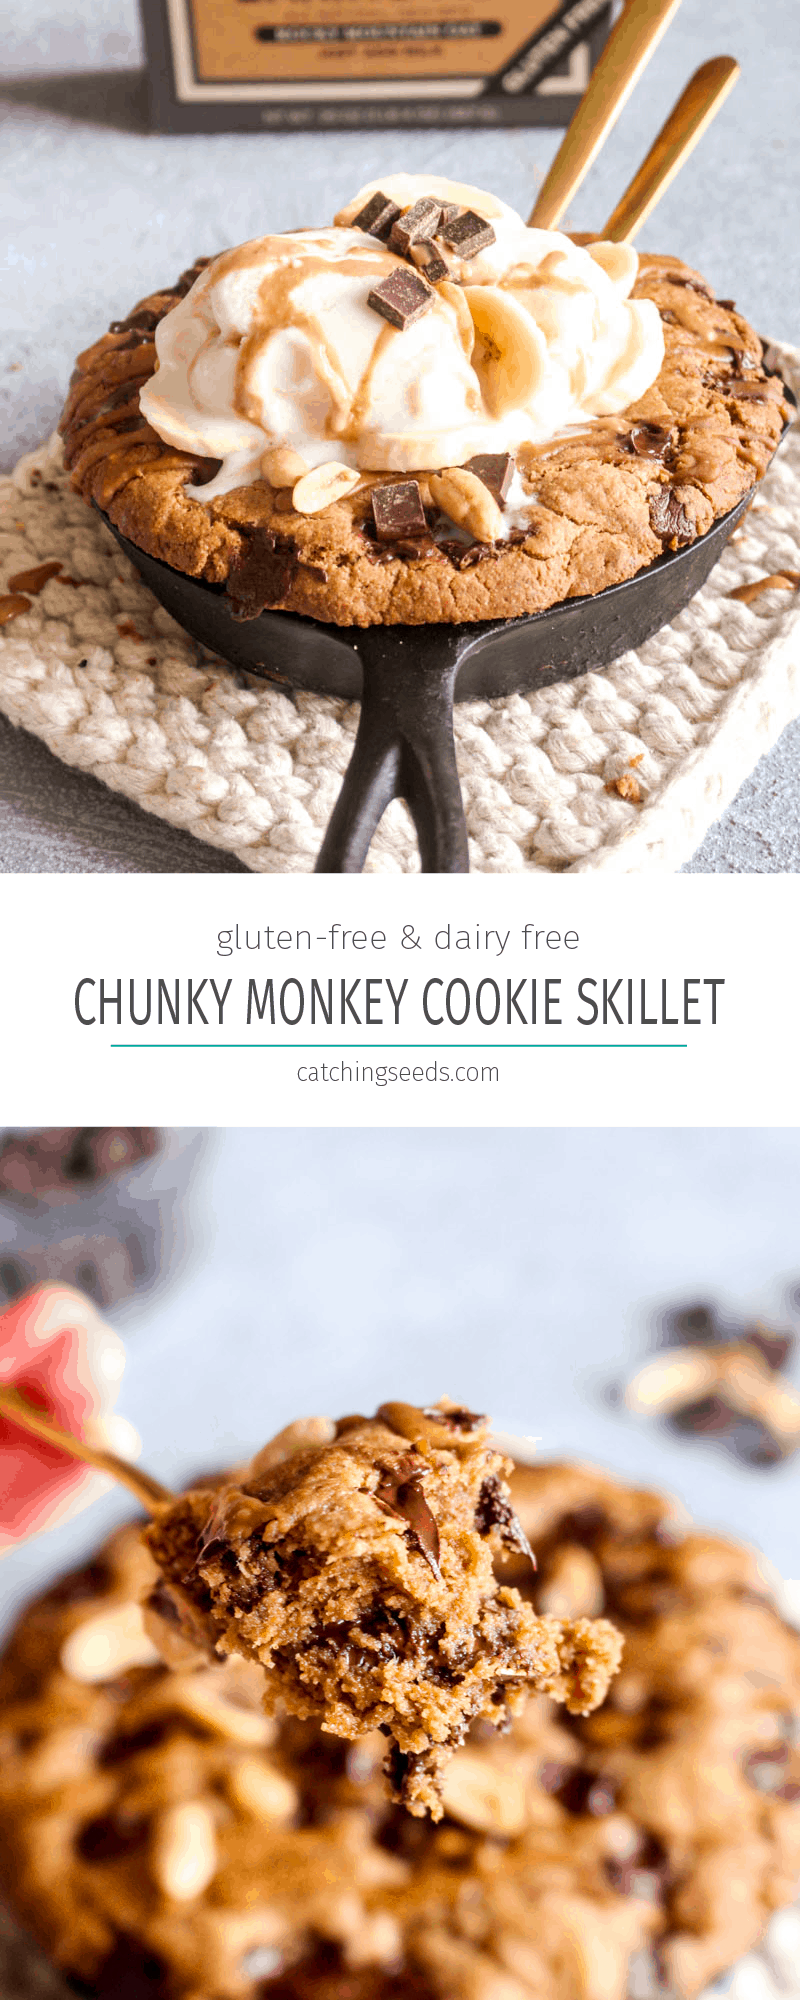 This Protein Packed Chunky Monkey Cookie Skillet recipe is full of peanut butter, banana, and chocolate flavor! This gluten free and dairy-free dessert is baked until the edges are golden and the center is like warm cookie dough. | CatchingSeeds.com